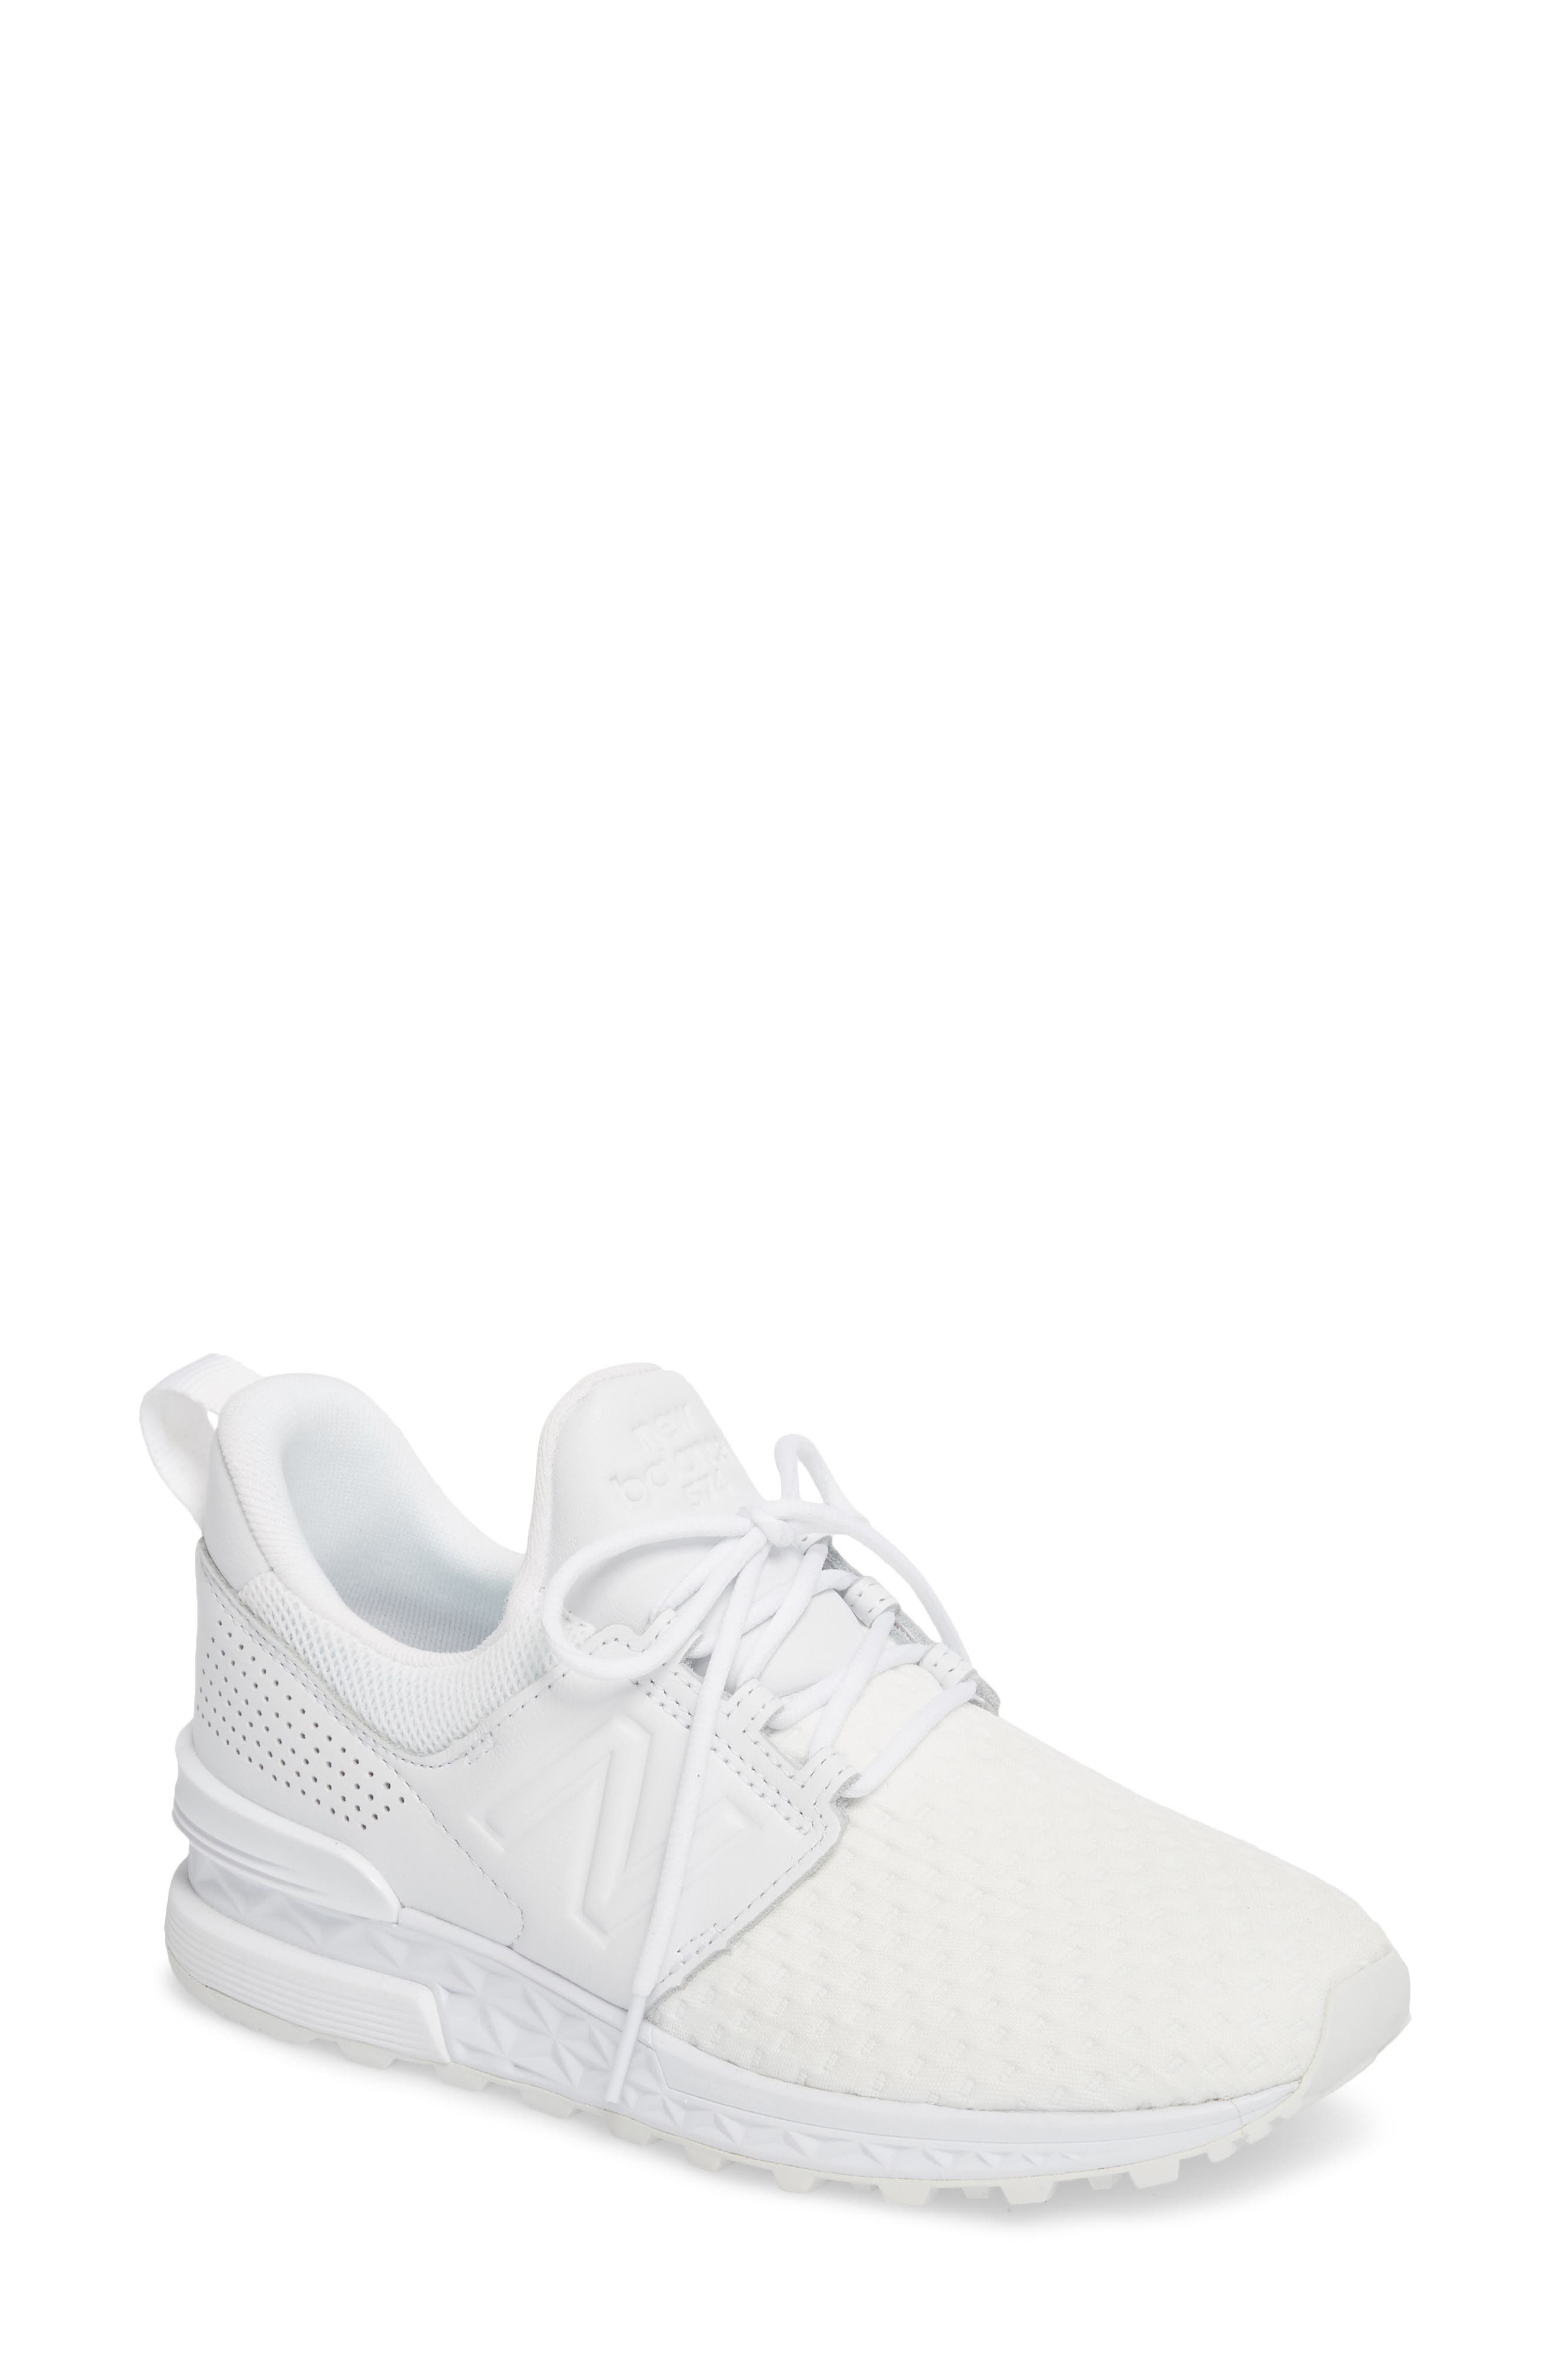 New Balance 574 Sport Decon Fresh Foam Sneaker (Women)